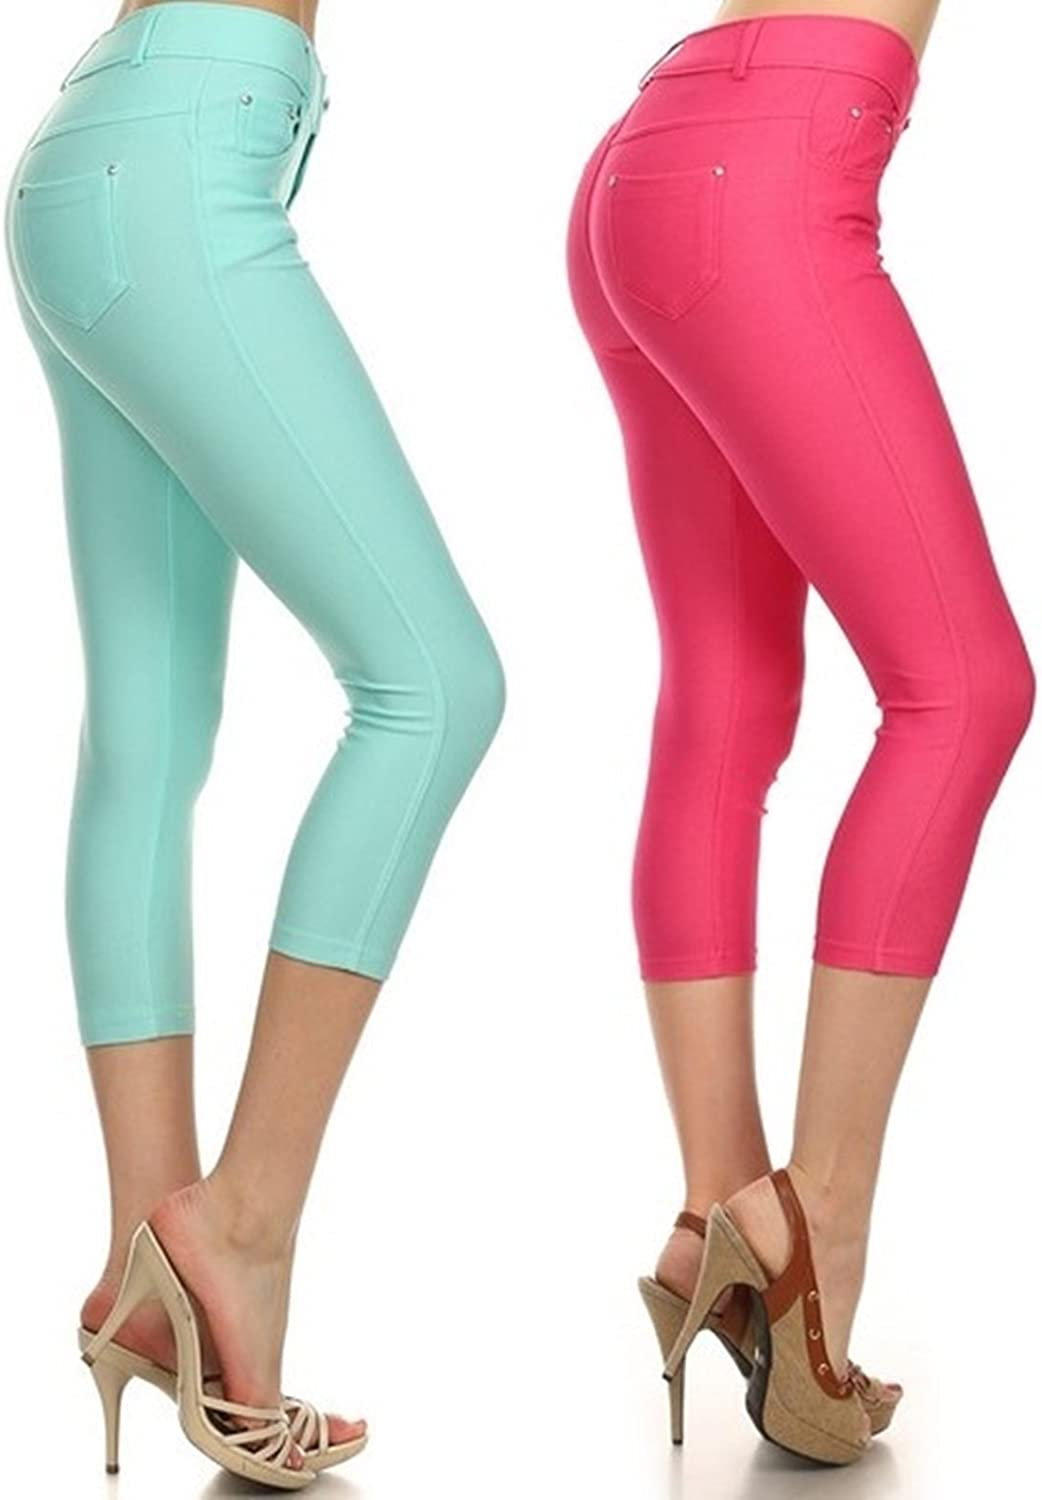 Yelete Multi Solid Color Capri Jeggings for Womon Soft and Stretchy Legging